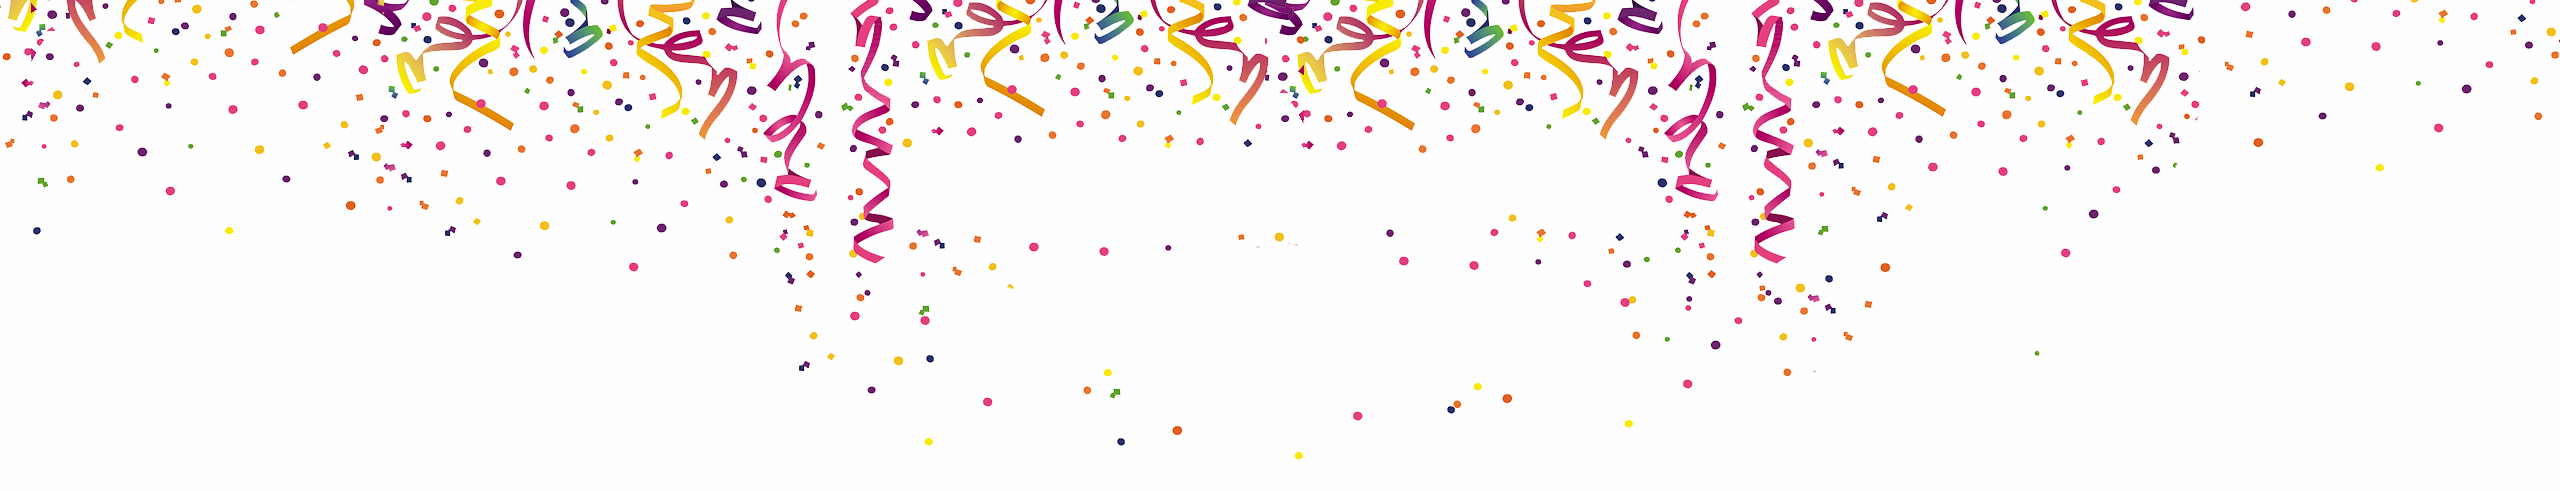 Confetti-PNG-Photo